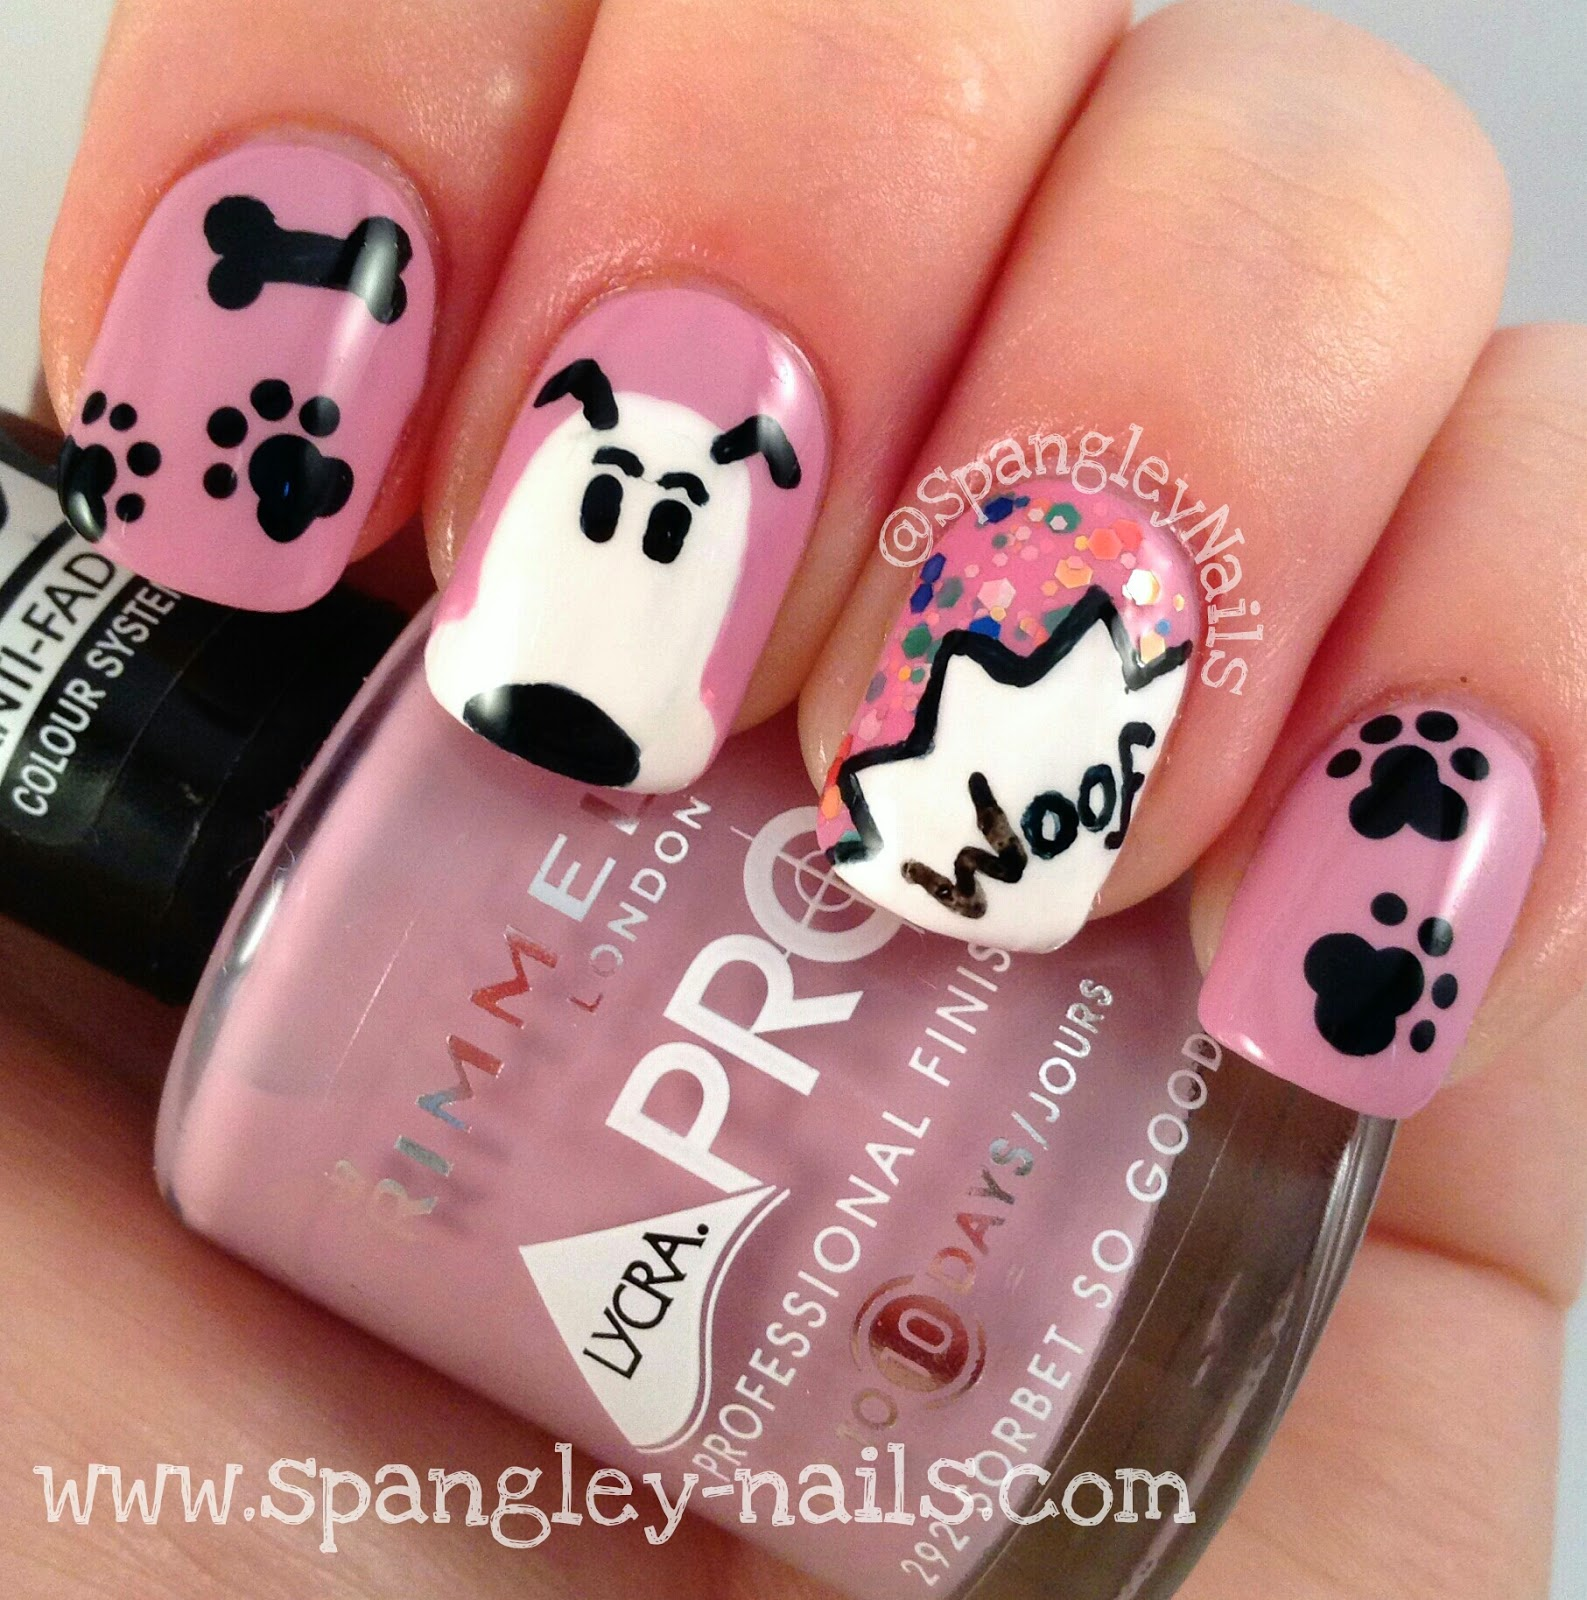 Gallery - Best Ideas About Dog Nail Art! - Dog Nail Art Graham Reid - - Dog Nail Designs Graham Reid